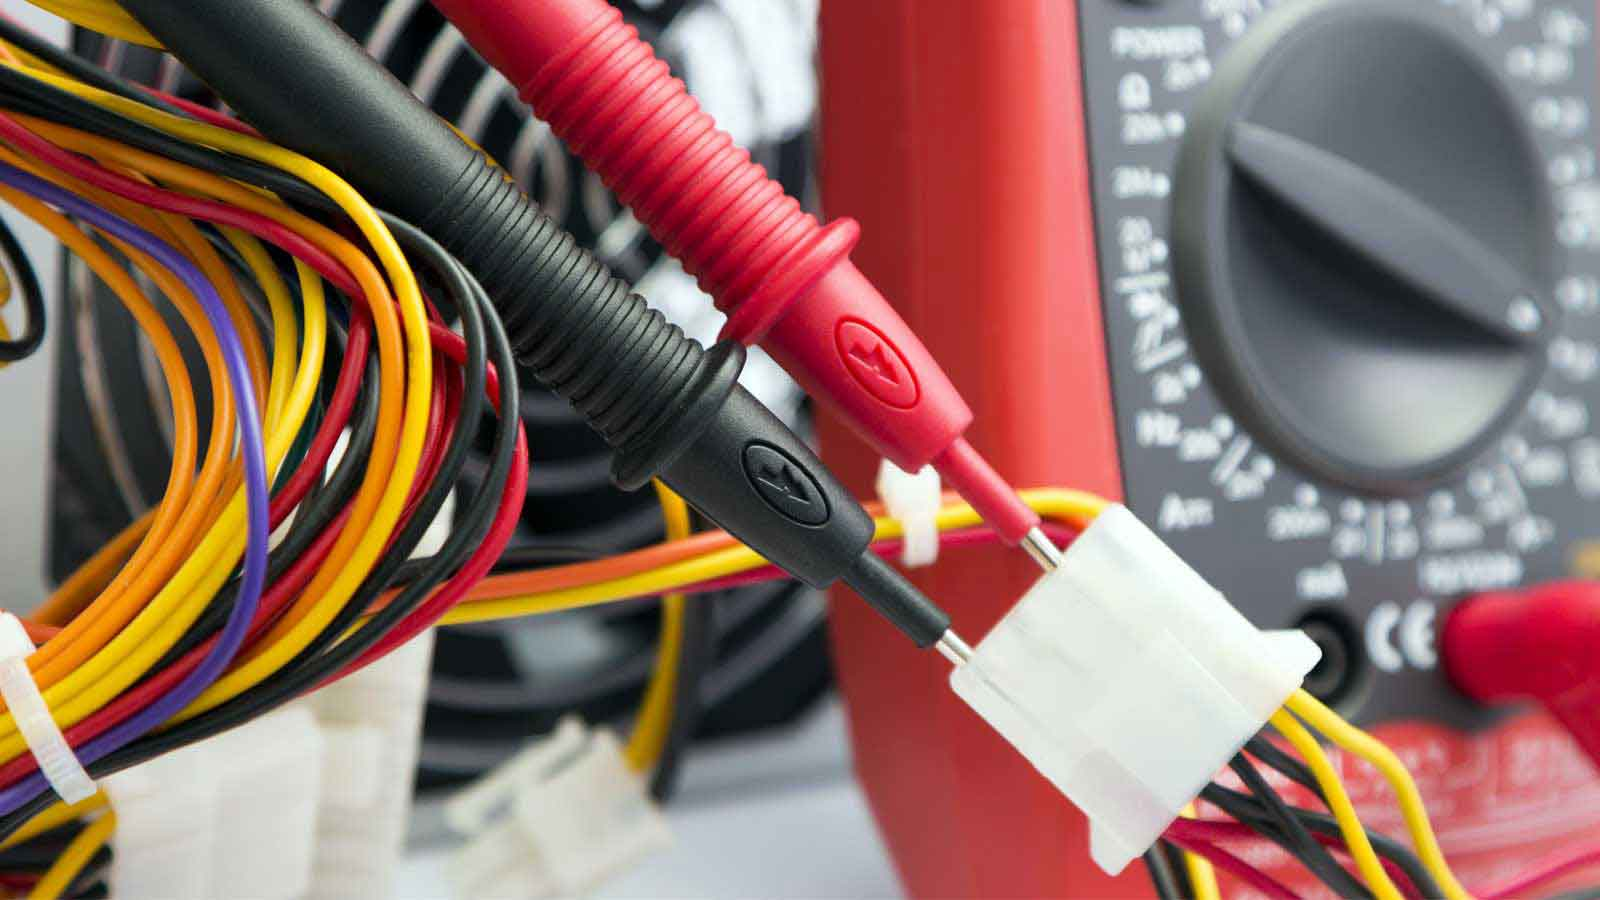 Dct Assemblies Custom Cable And Wiring Harnesses Phoenix Az Automotive Specialist In Thoroughly Tests Every Before Shipment